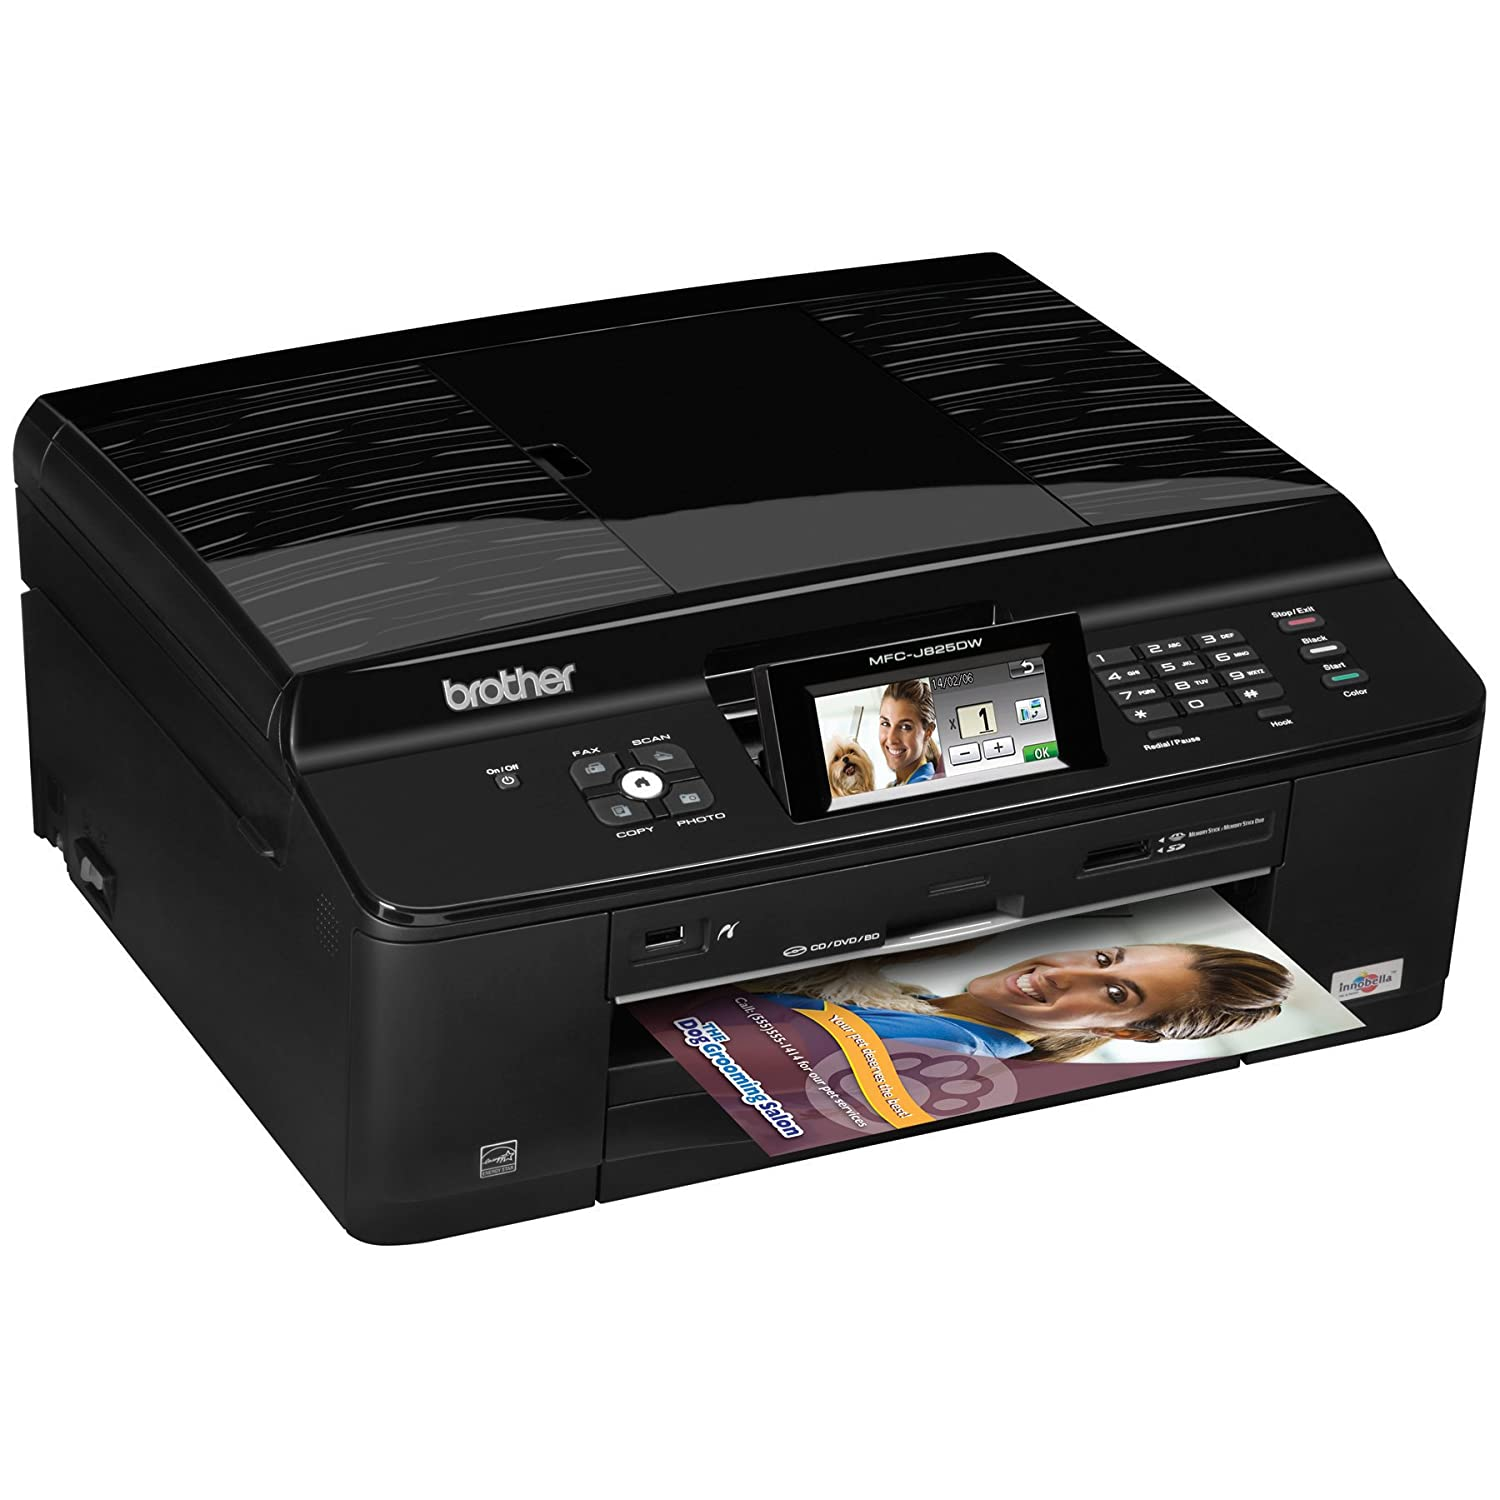 performance features reliability price make brother color all in rh mrgadget com brother printer mfc-j825dw driver brother printer mfc j835dw manual